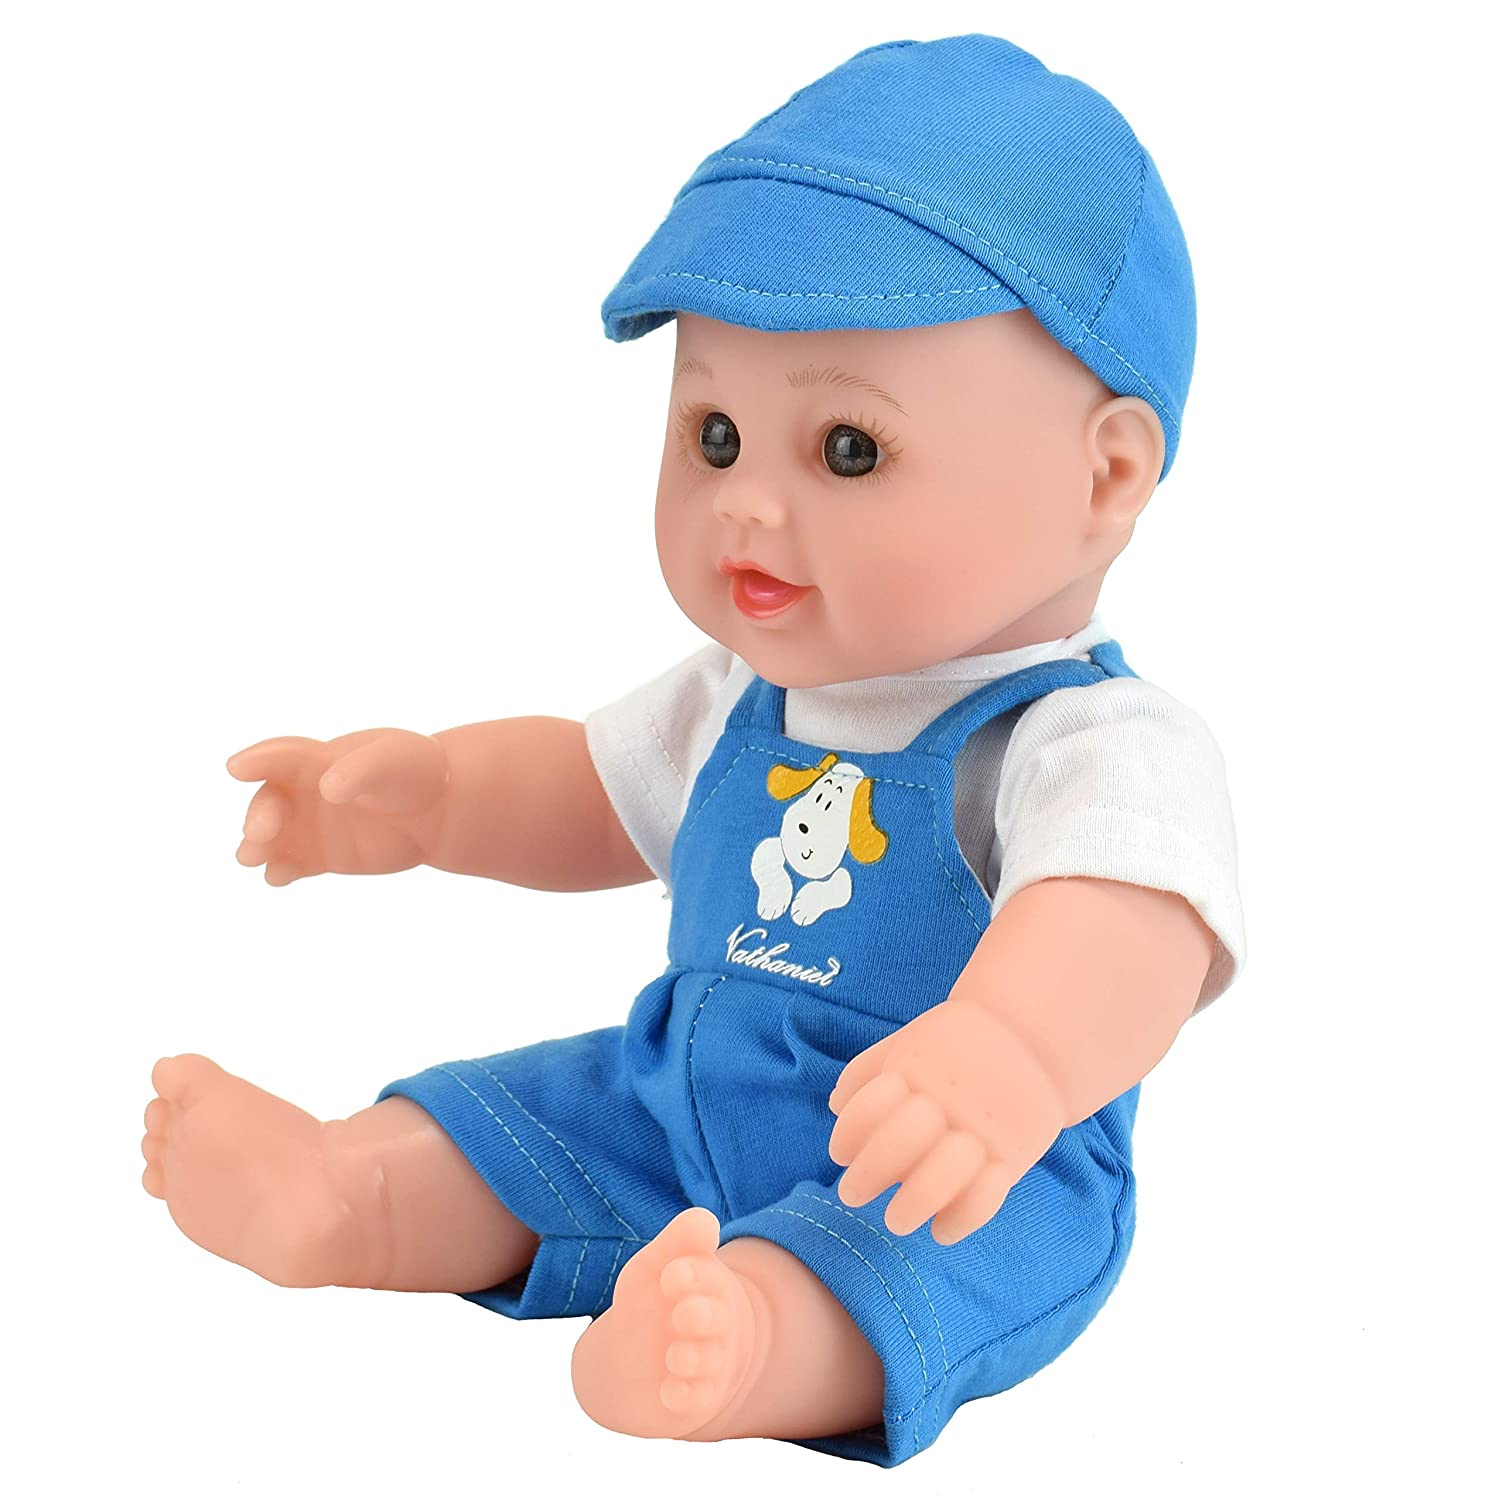 Lifelike Reborn Washable Silicone Doll. TUSALMO 12 inch Vinyl Newborn Baby Dolls for Childrens and Granddaughters Holiday Birthday Green